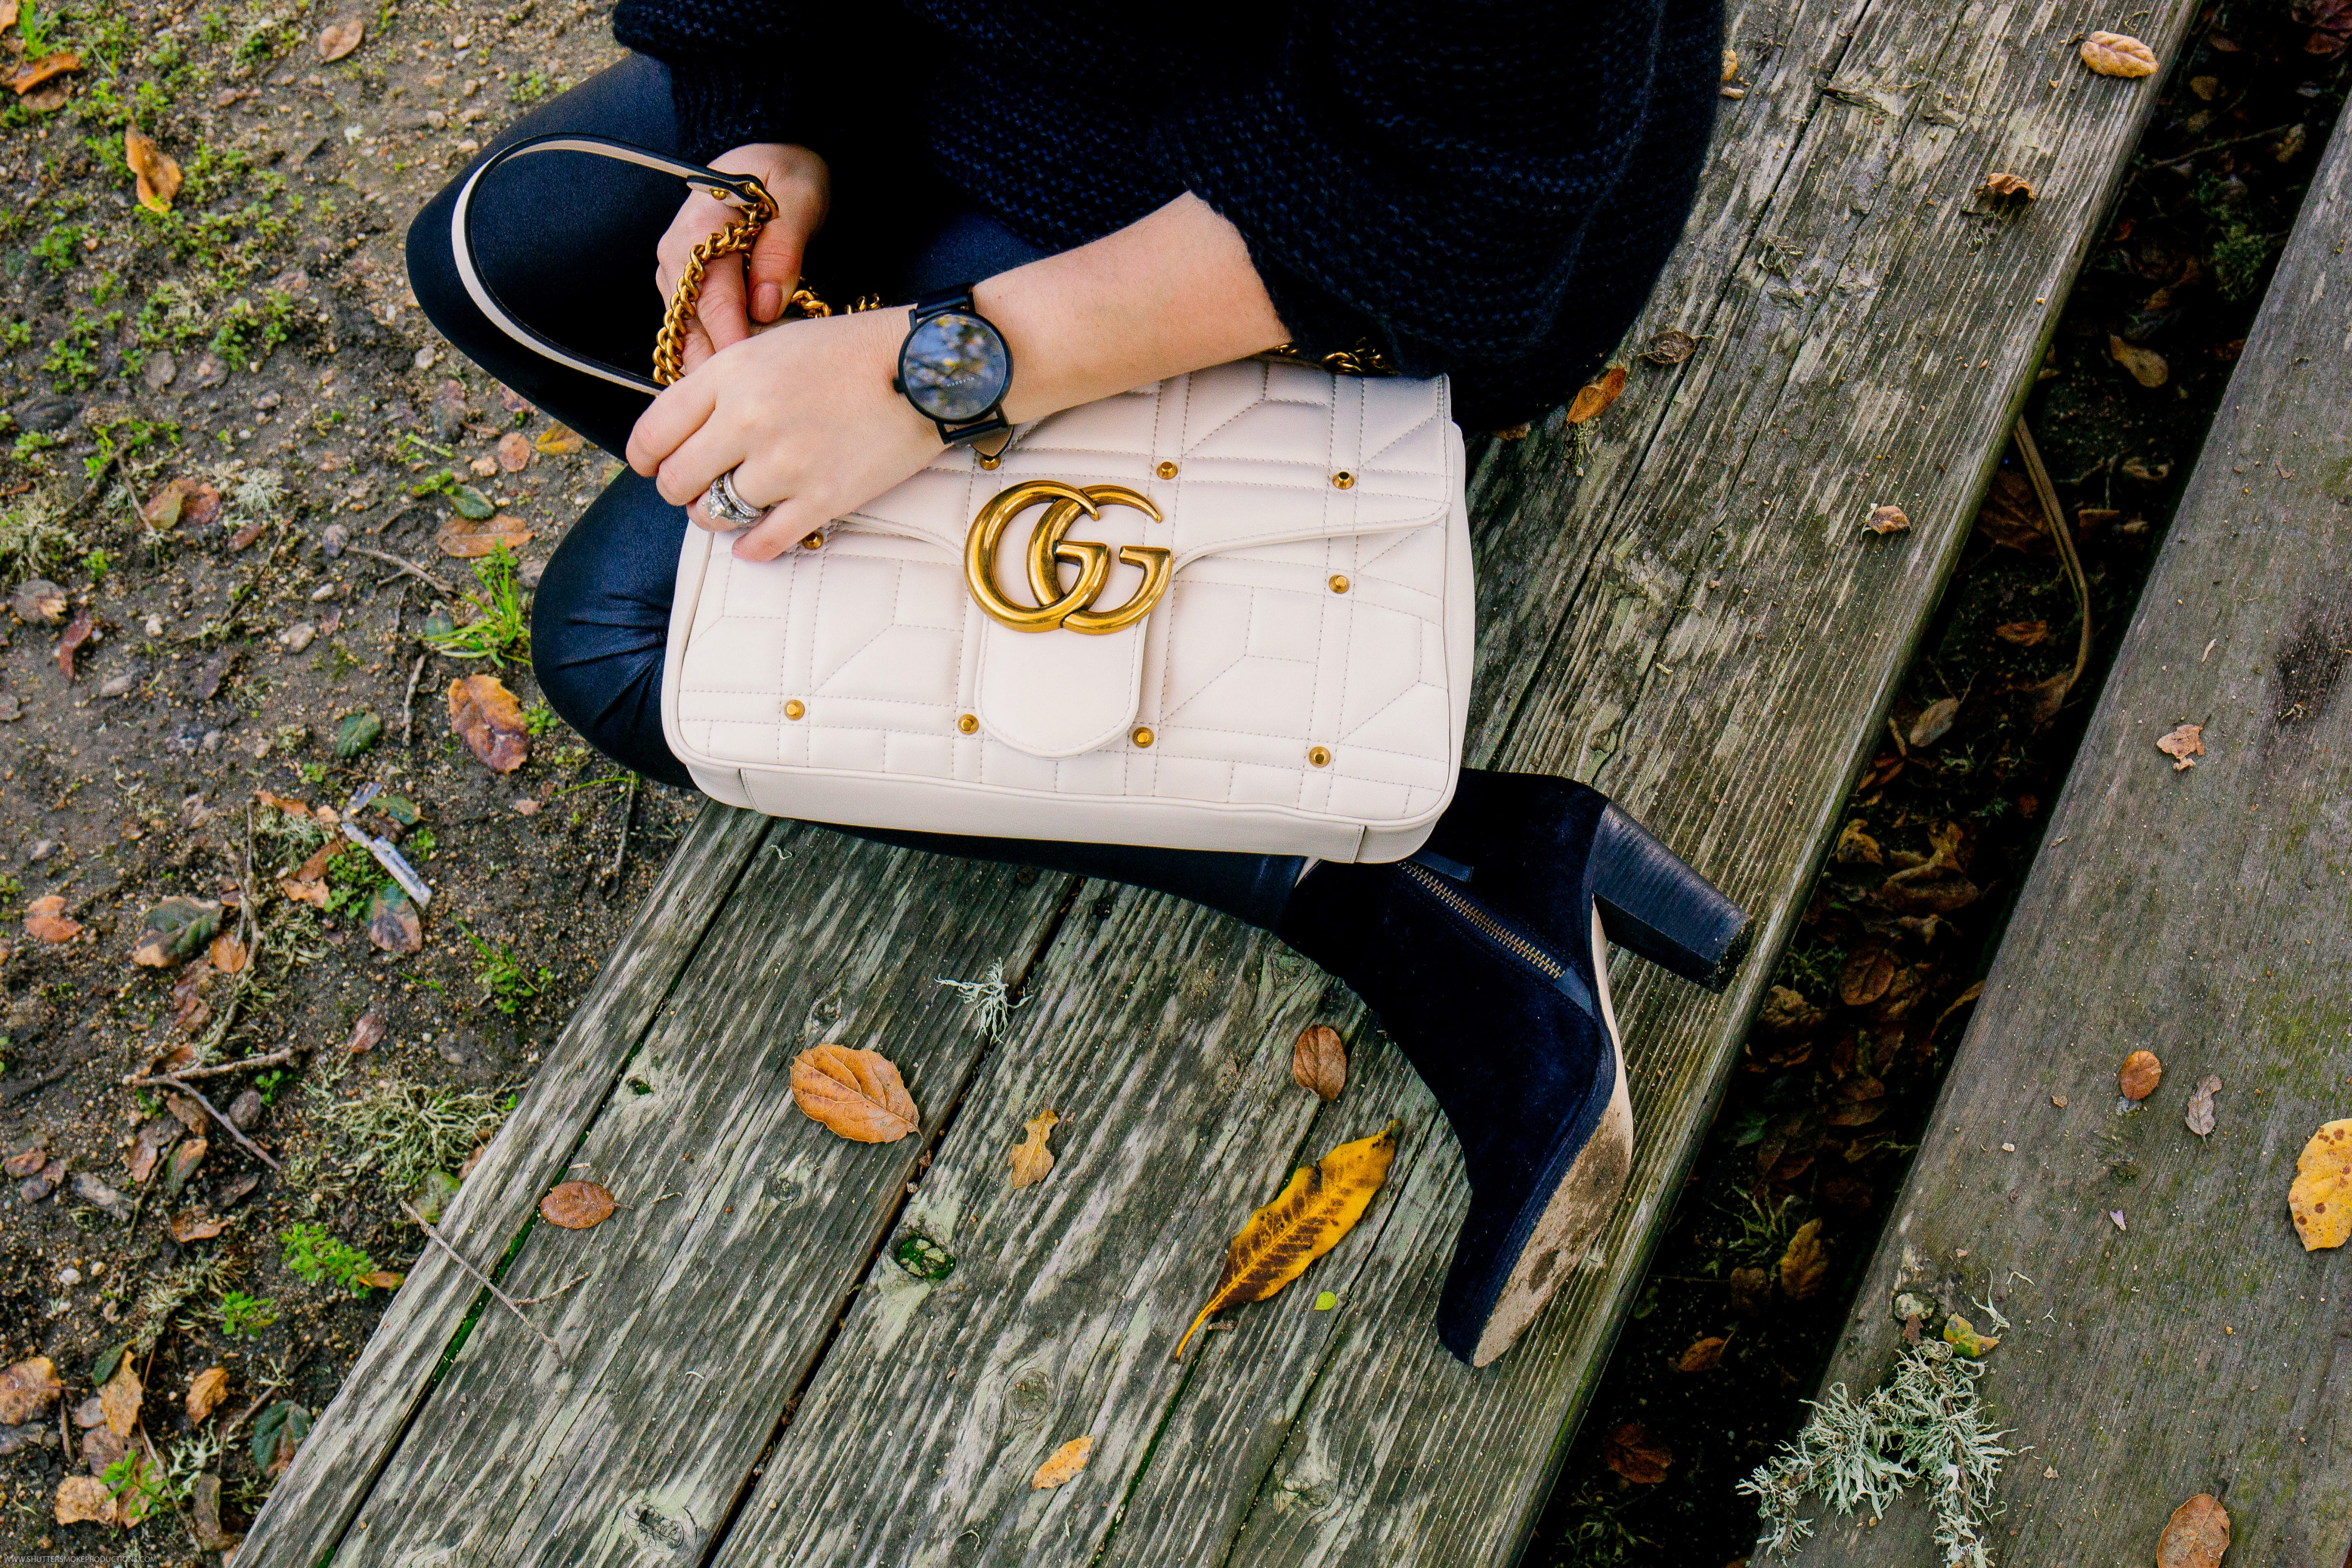 black leather spanx // free people sweater // medium gucci marmont   Designer Handbags by popular Monterey fashion blog, Haute Beauty Guide: image of a woman sitting on a wooden bench and holding a cream leather Gucci handbag.